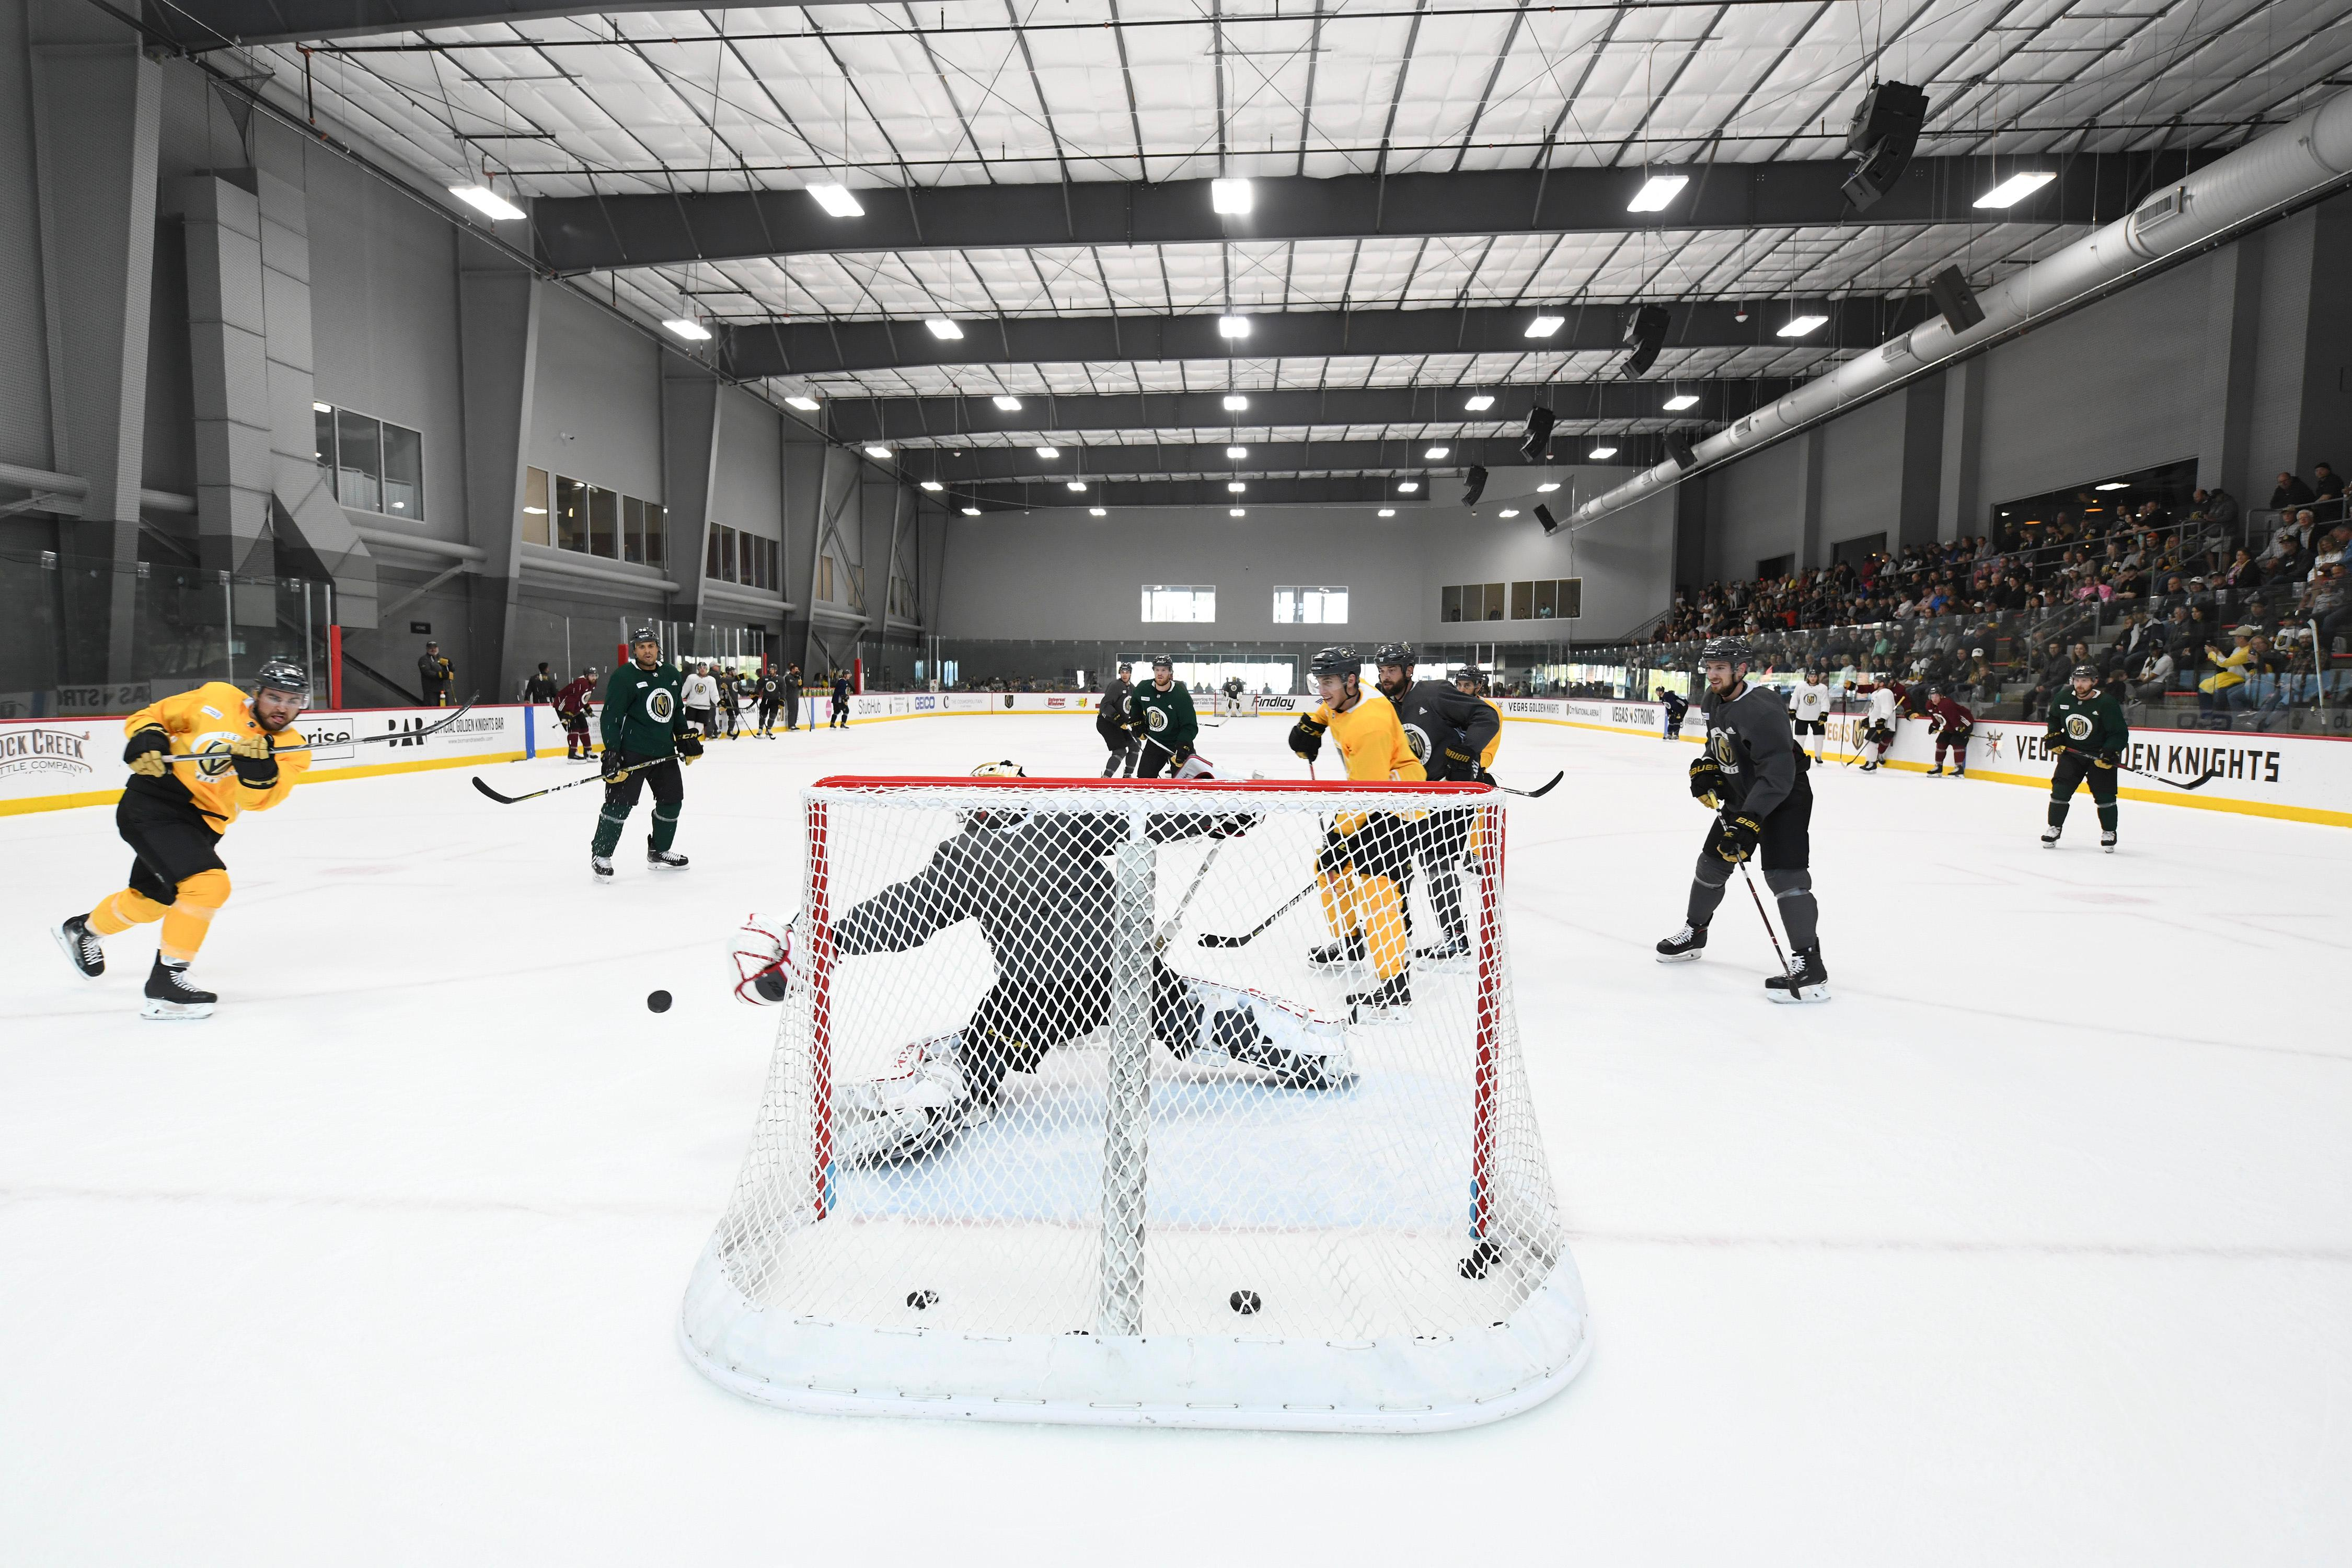 Vegas Golden Knights left wing William Carrier takes a shot at goalkeeper Malcolm Subban during the Vegas Golden Knights practice Friday, April 20, 2018, at City National Arena in Las Vegas. CREDIT: Sam Morris/Las Vegas News Bureau